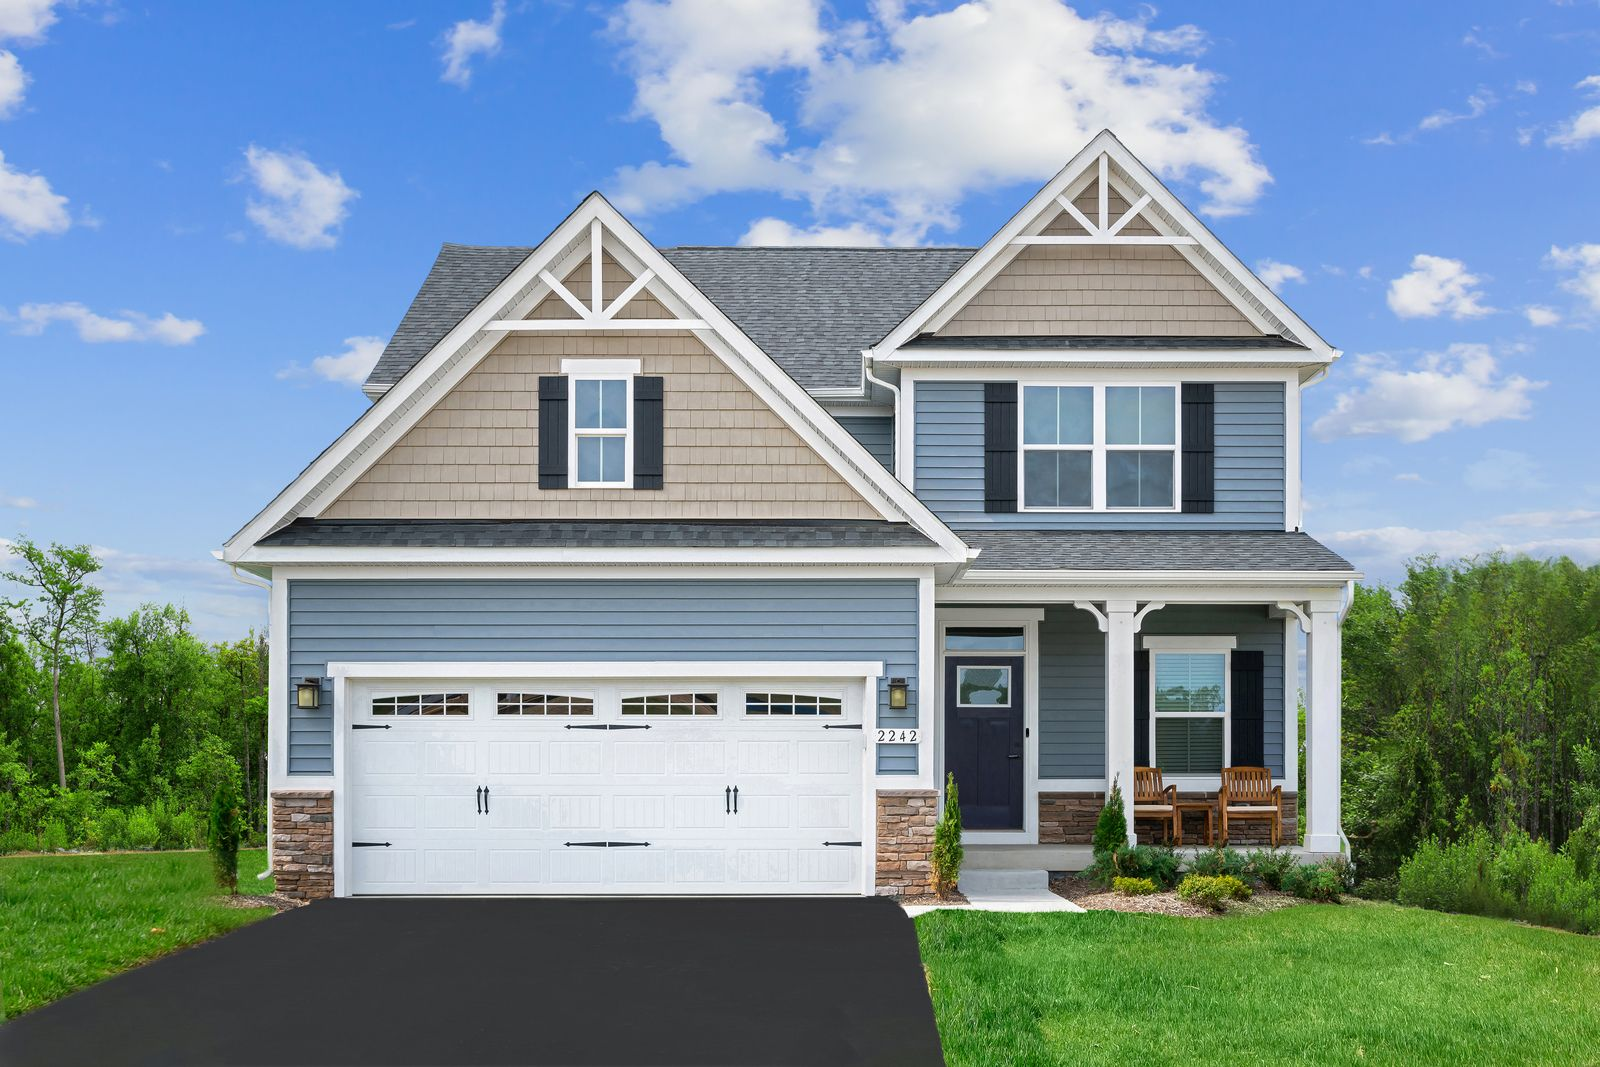 Welcome to Auburn Meadows:The lowest priced new single-family homesin Farmington.Click here to schedule your phone or video appointment today.